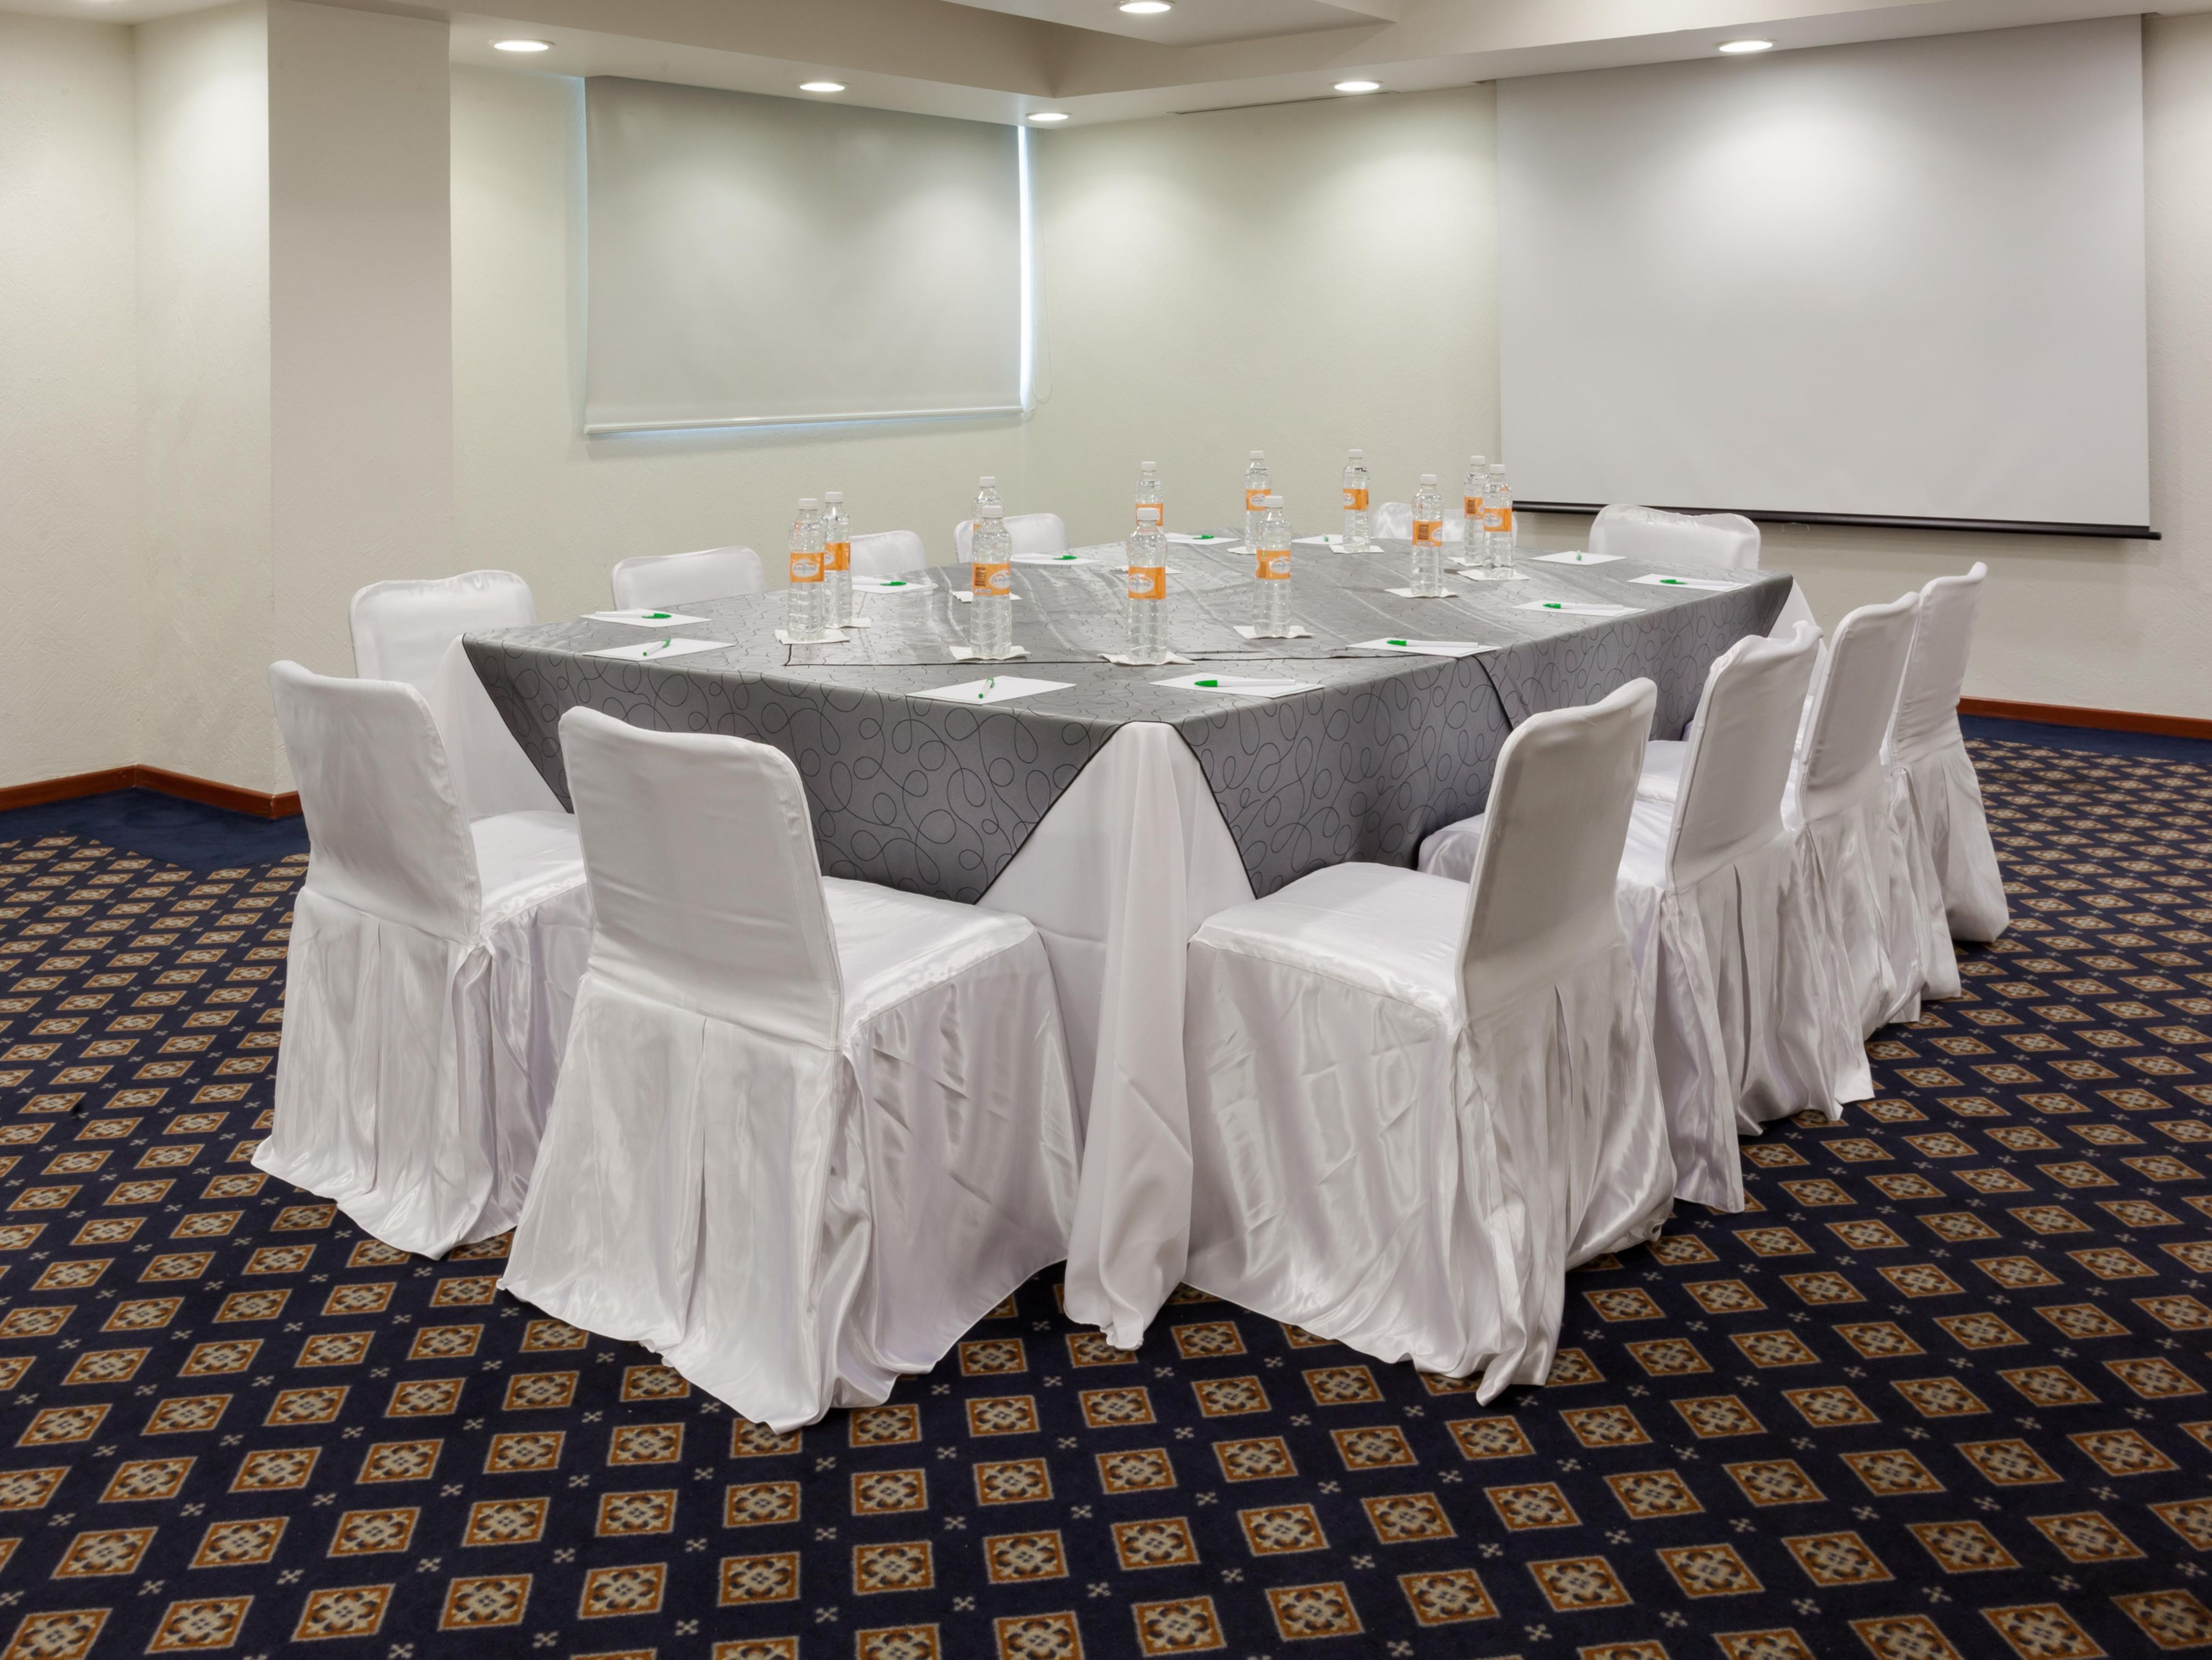 Our Meeting Rooms are perfect for meetings and banquets